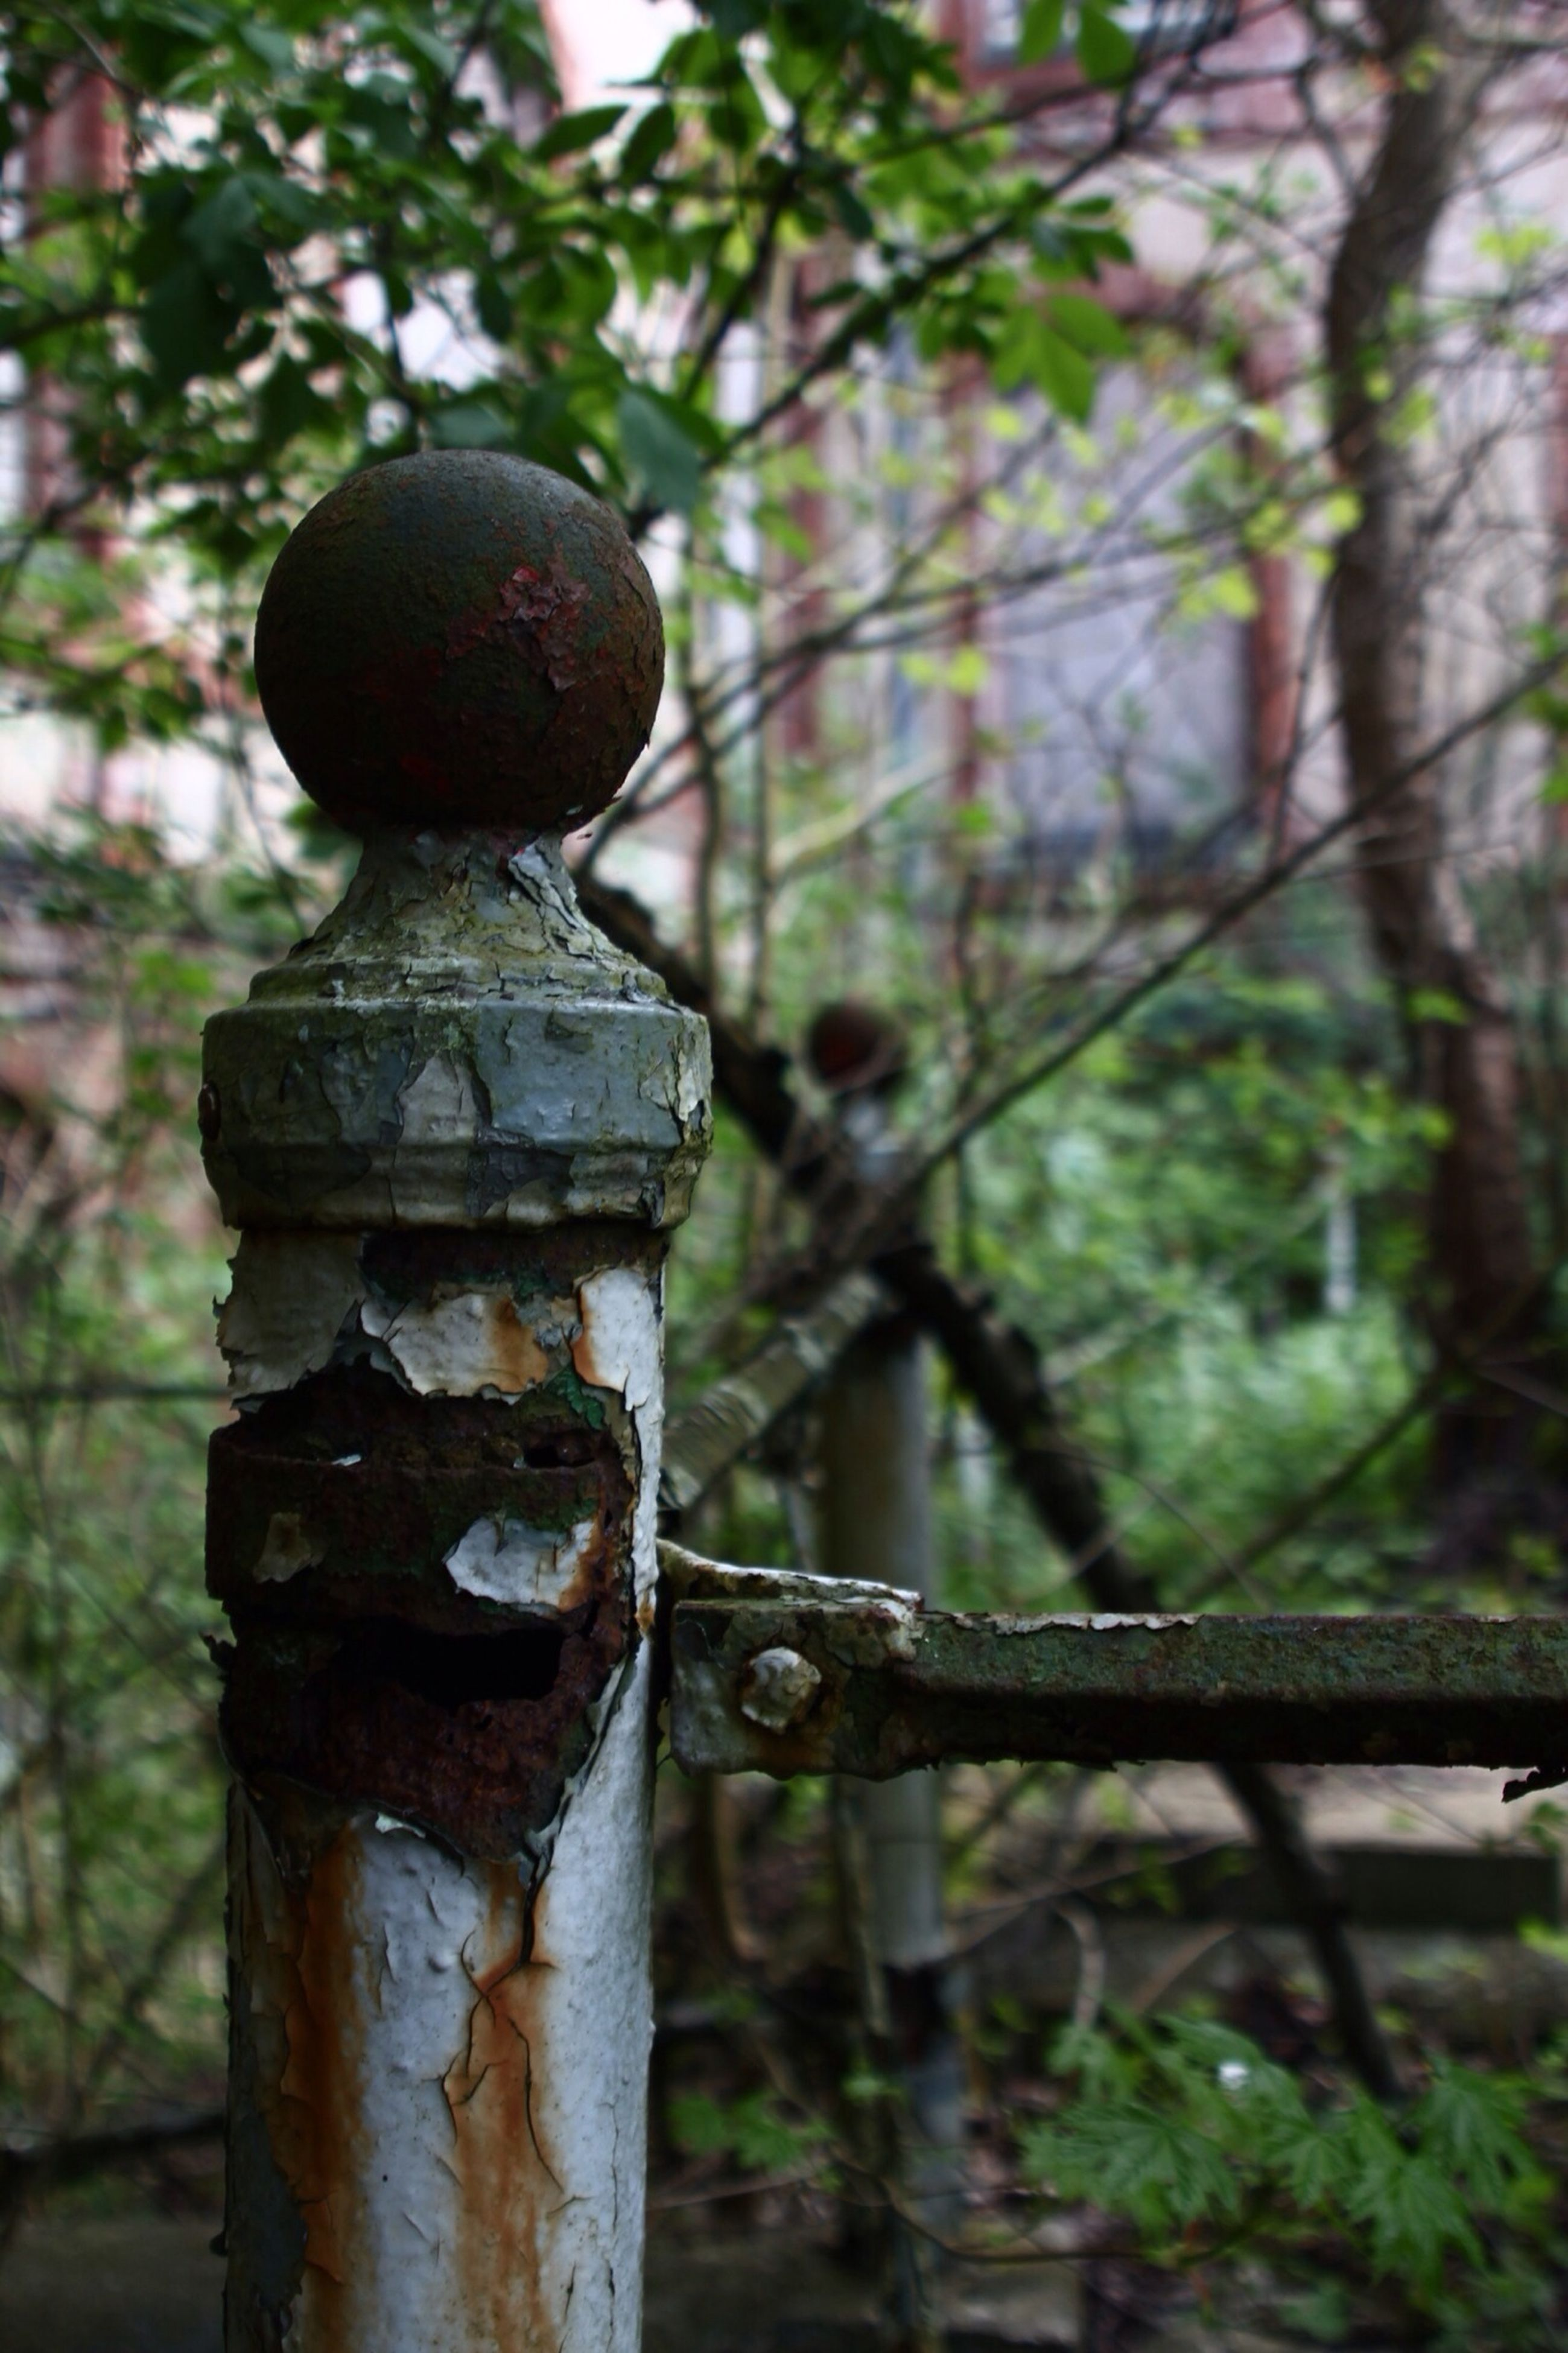 focus on foreground, metal, close-up, rusty, tree, metallic, safety, protection, weathered, hanging, old, security, day, outdoors, padlock, fence, low angle view, selective focus, branch, no people